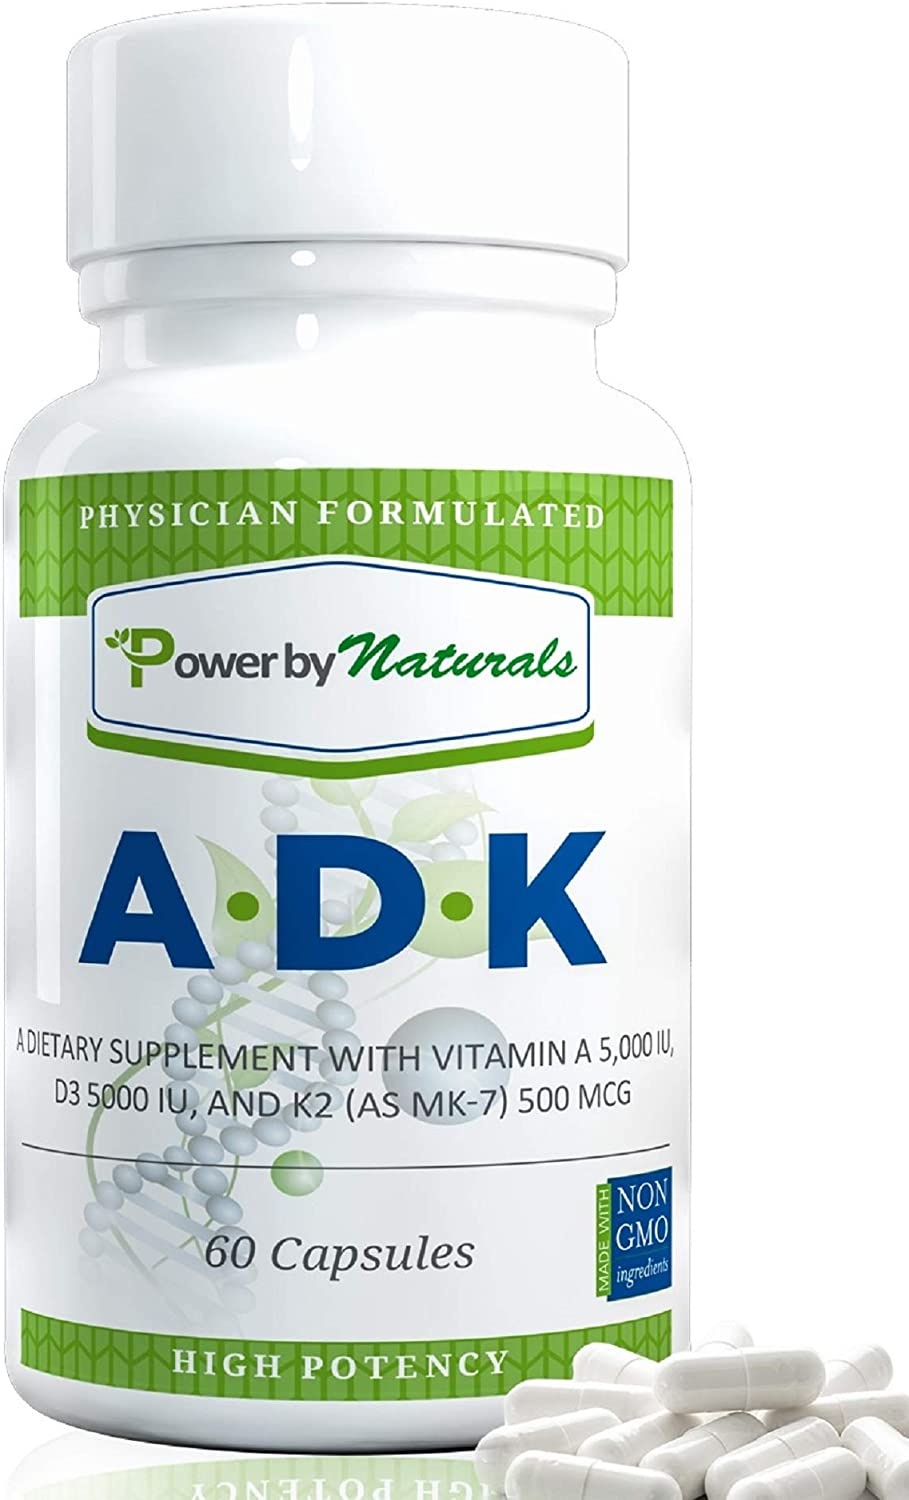 PbyN – ADK Vitamin – Dr Formulated – Purest, High Potency Vitamin A 5000 iu D3 5000 iu K2 as MK-7 500mcg, Supplement for Strong Bone, Immune, and Heart Health, Non GMO,No Soy, 60 Veggie Capsules